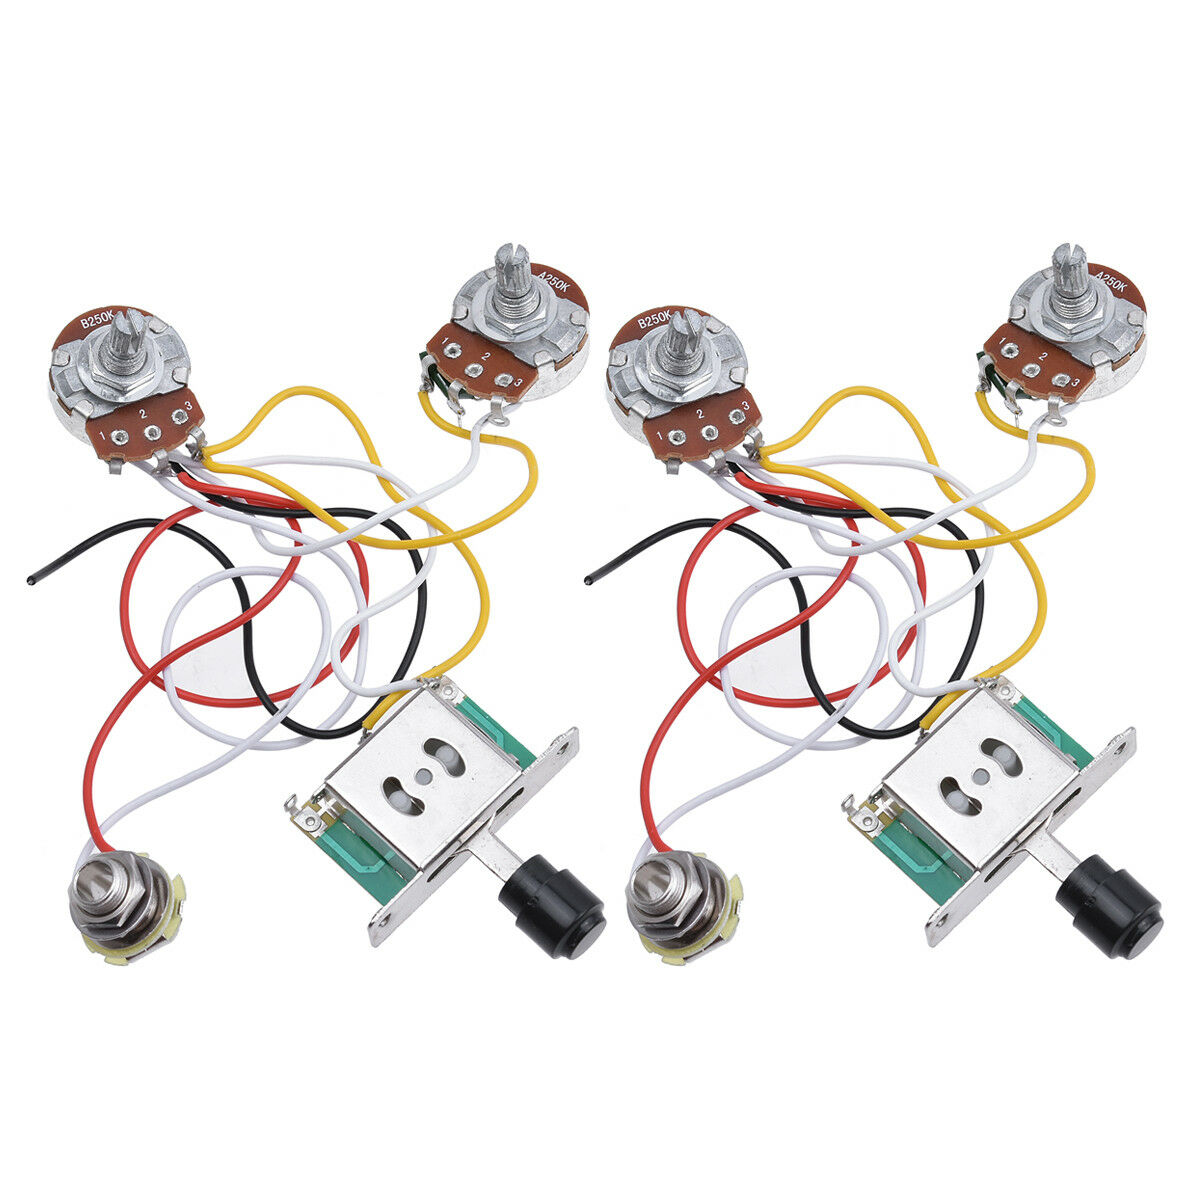 hight resolution of 2 pcs guitar prewired wiring harness for fender tele parts 3 way 250k pots jack